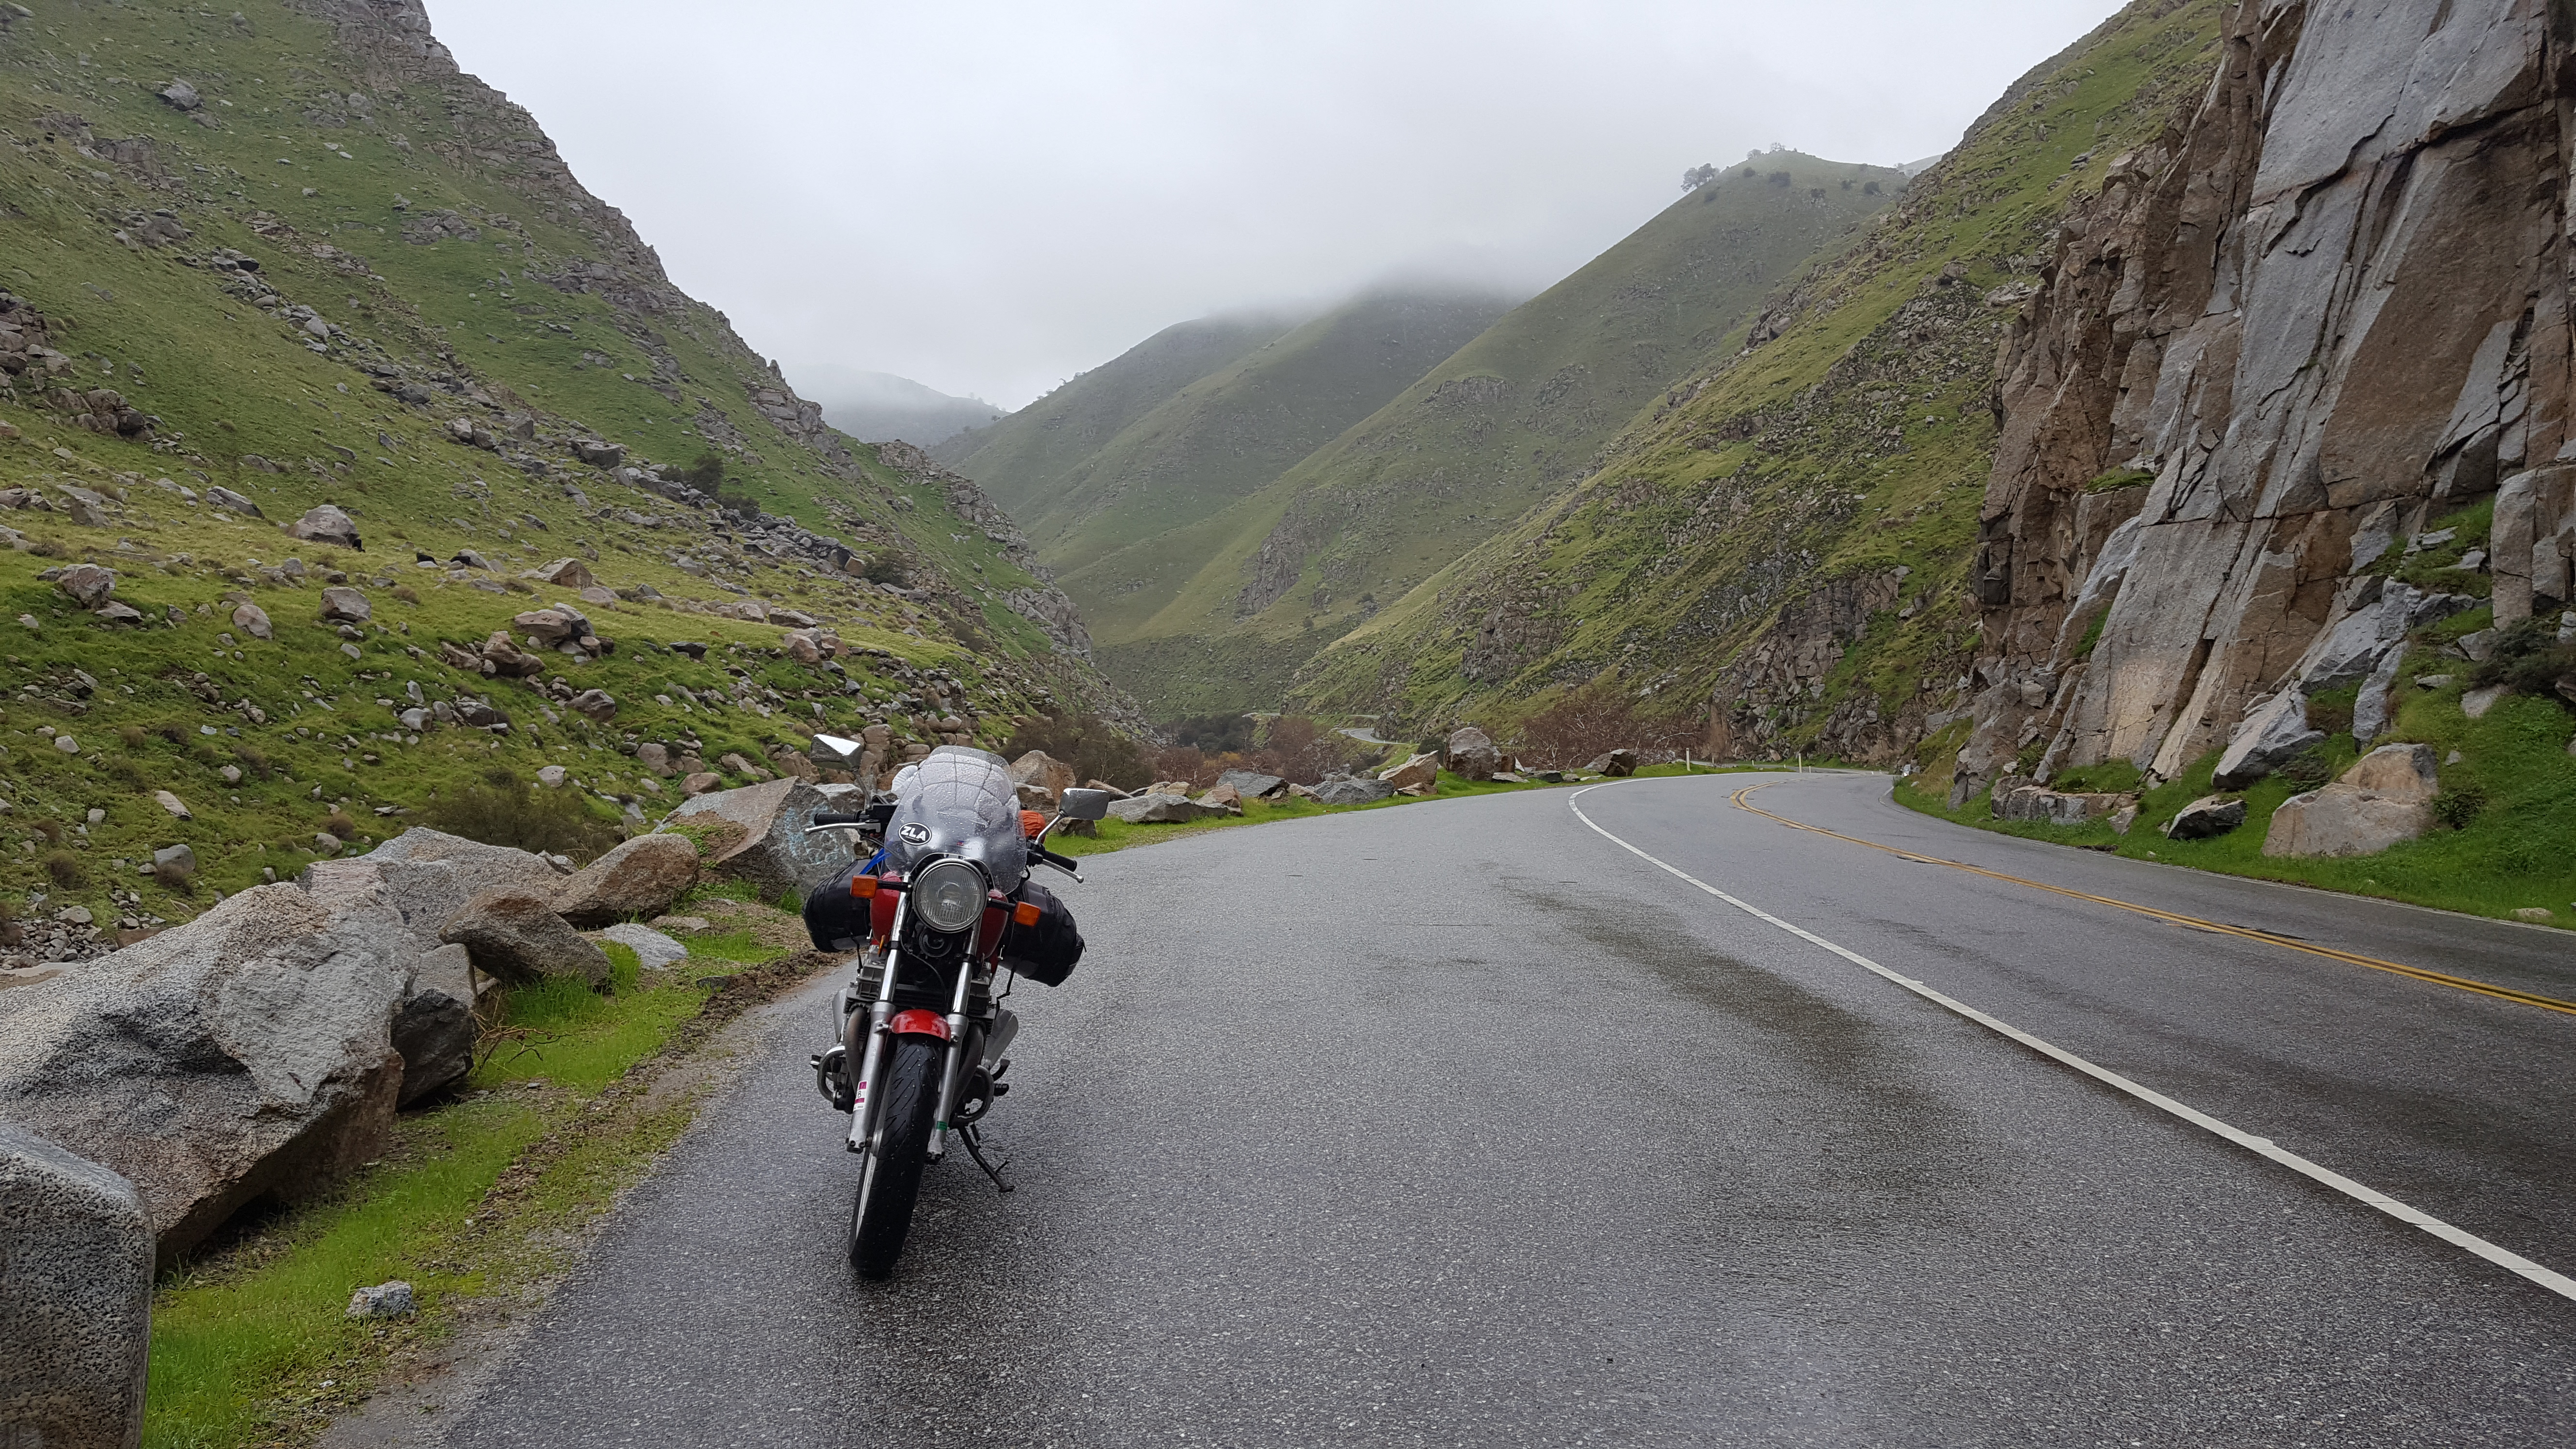 Motorcycle parked roadside on a 2 lane highway with rocky hills and foggy mountain peaks